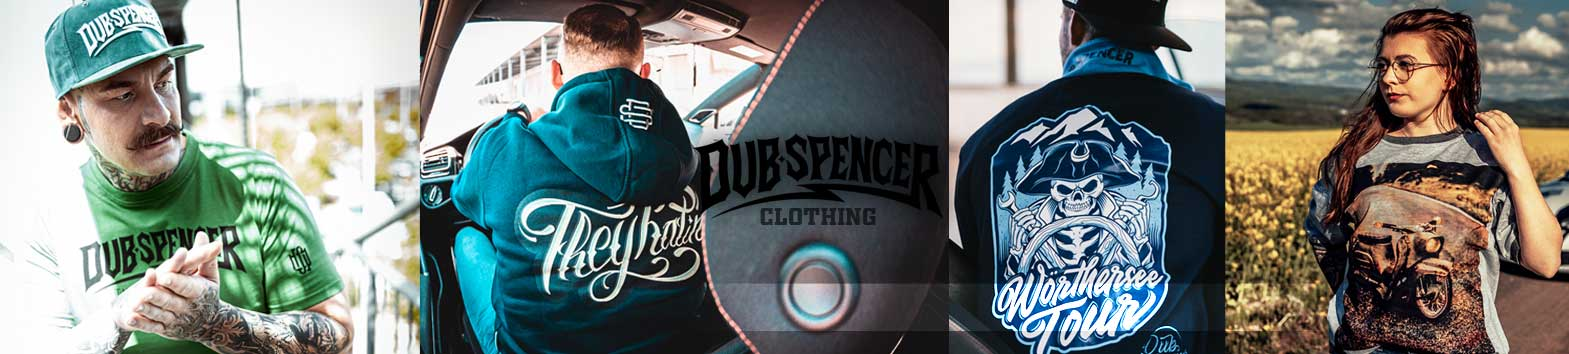 Dub Spencer Clothing - flavored with attitude